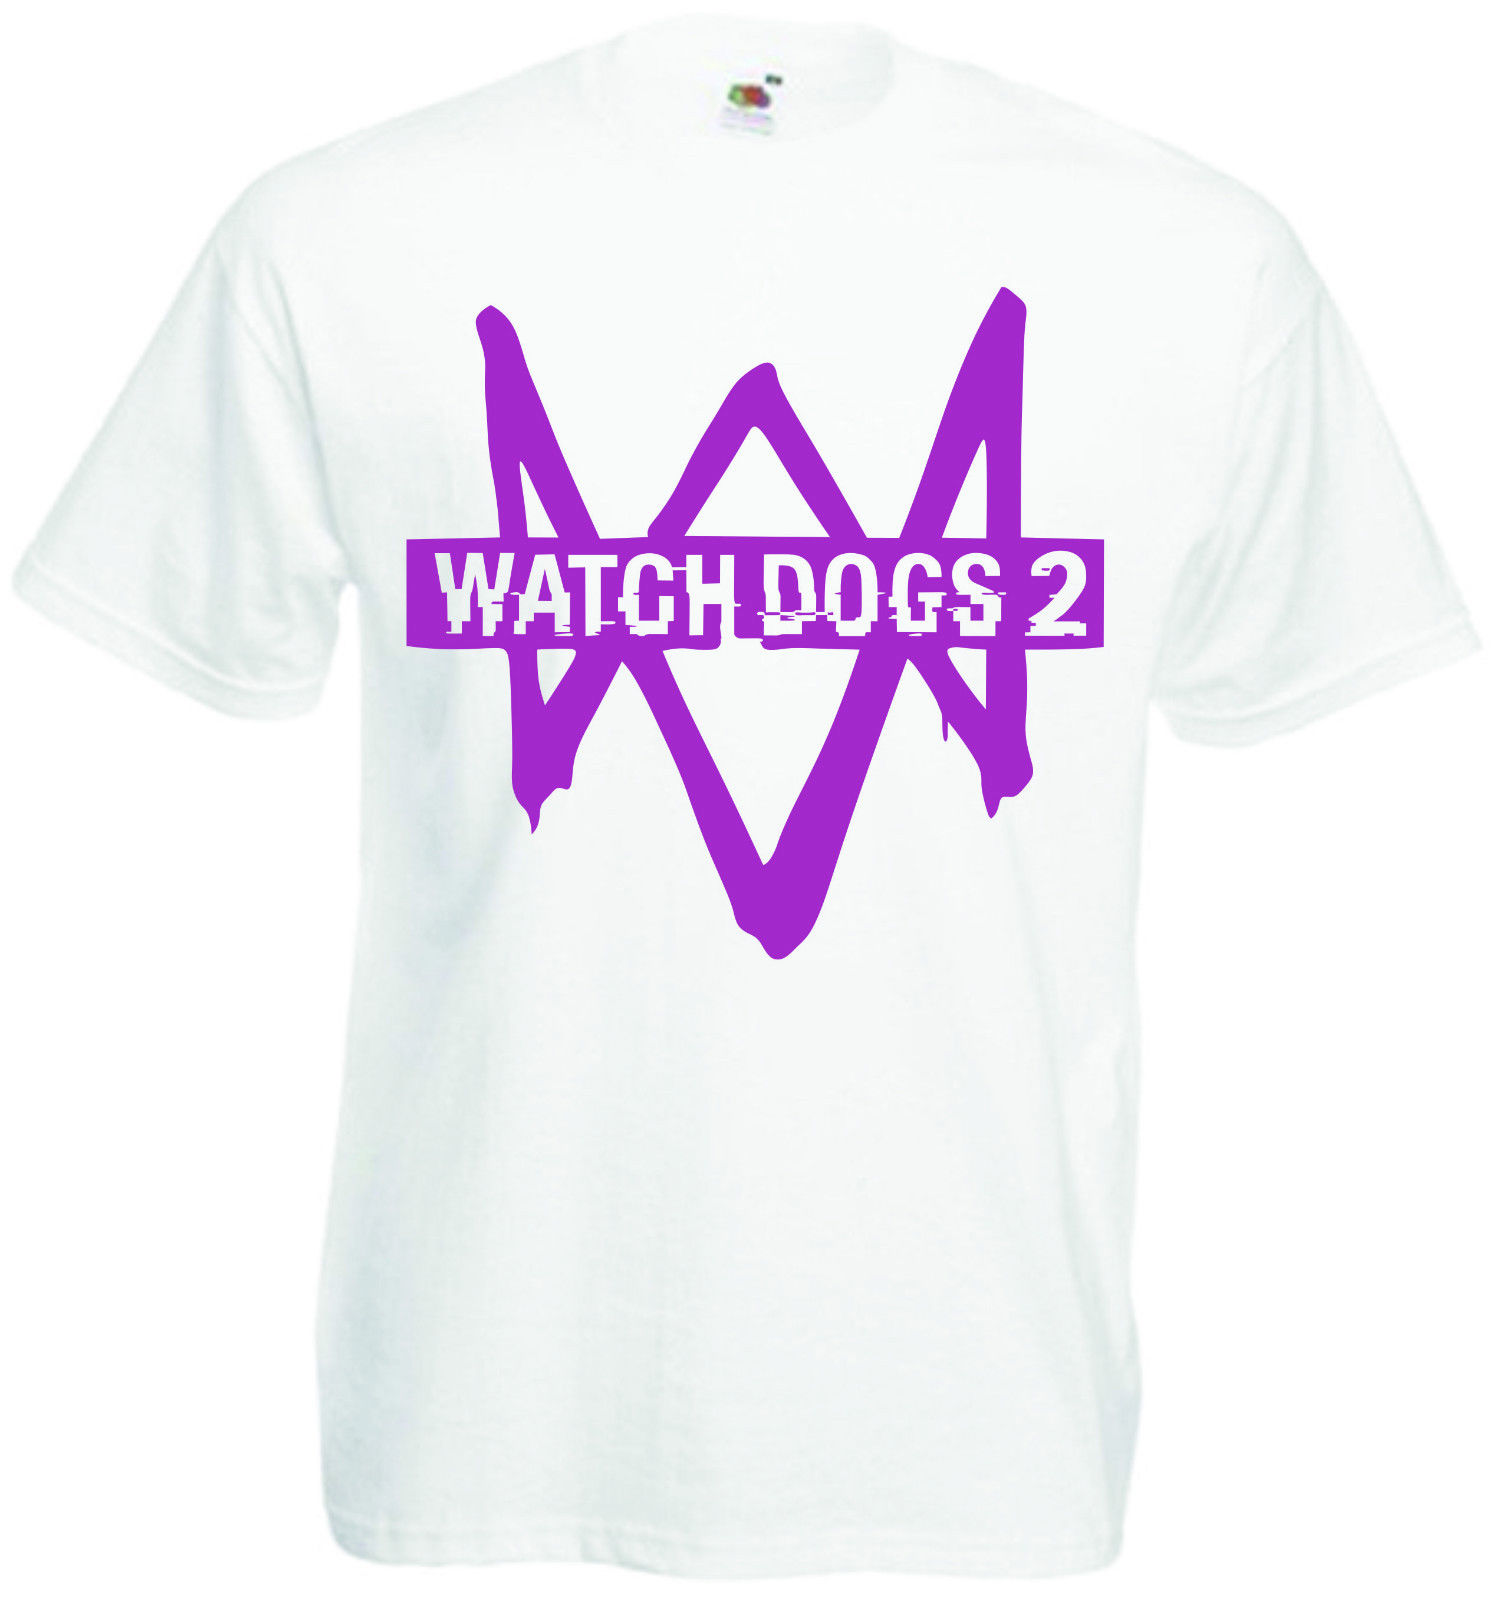 Watchdogs 2 T-Shirt or Vest Gaming Tee Mens Top Video Games Clothing Short Sleeve Discount 100 % Cotton T Shirts Top Tee